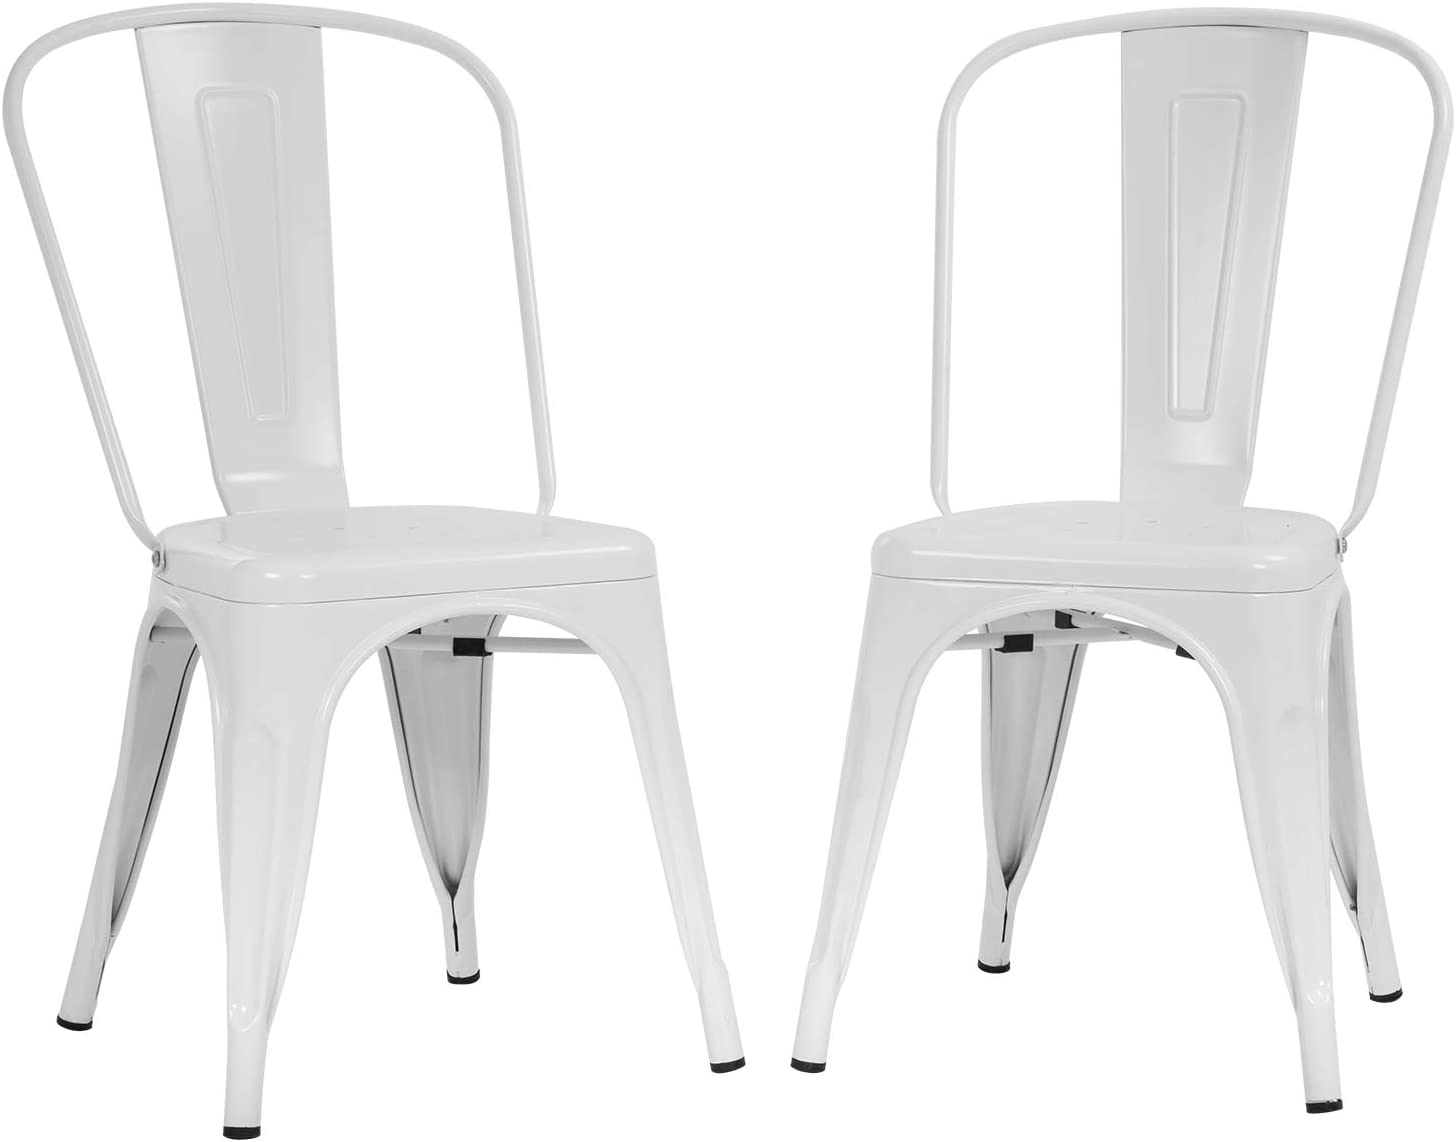 Metal Dining Chairs Set of 3 Indoor Outdoor Chairs Patio Chairs Kitchen  Metal Chairs 3 Inch Seat Height Restaurant Chair Metal Stackable Chair  Tolix